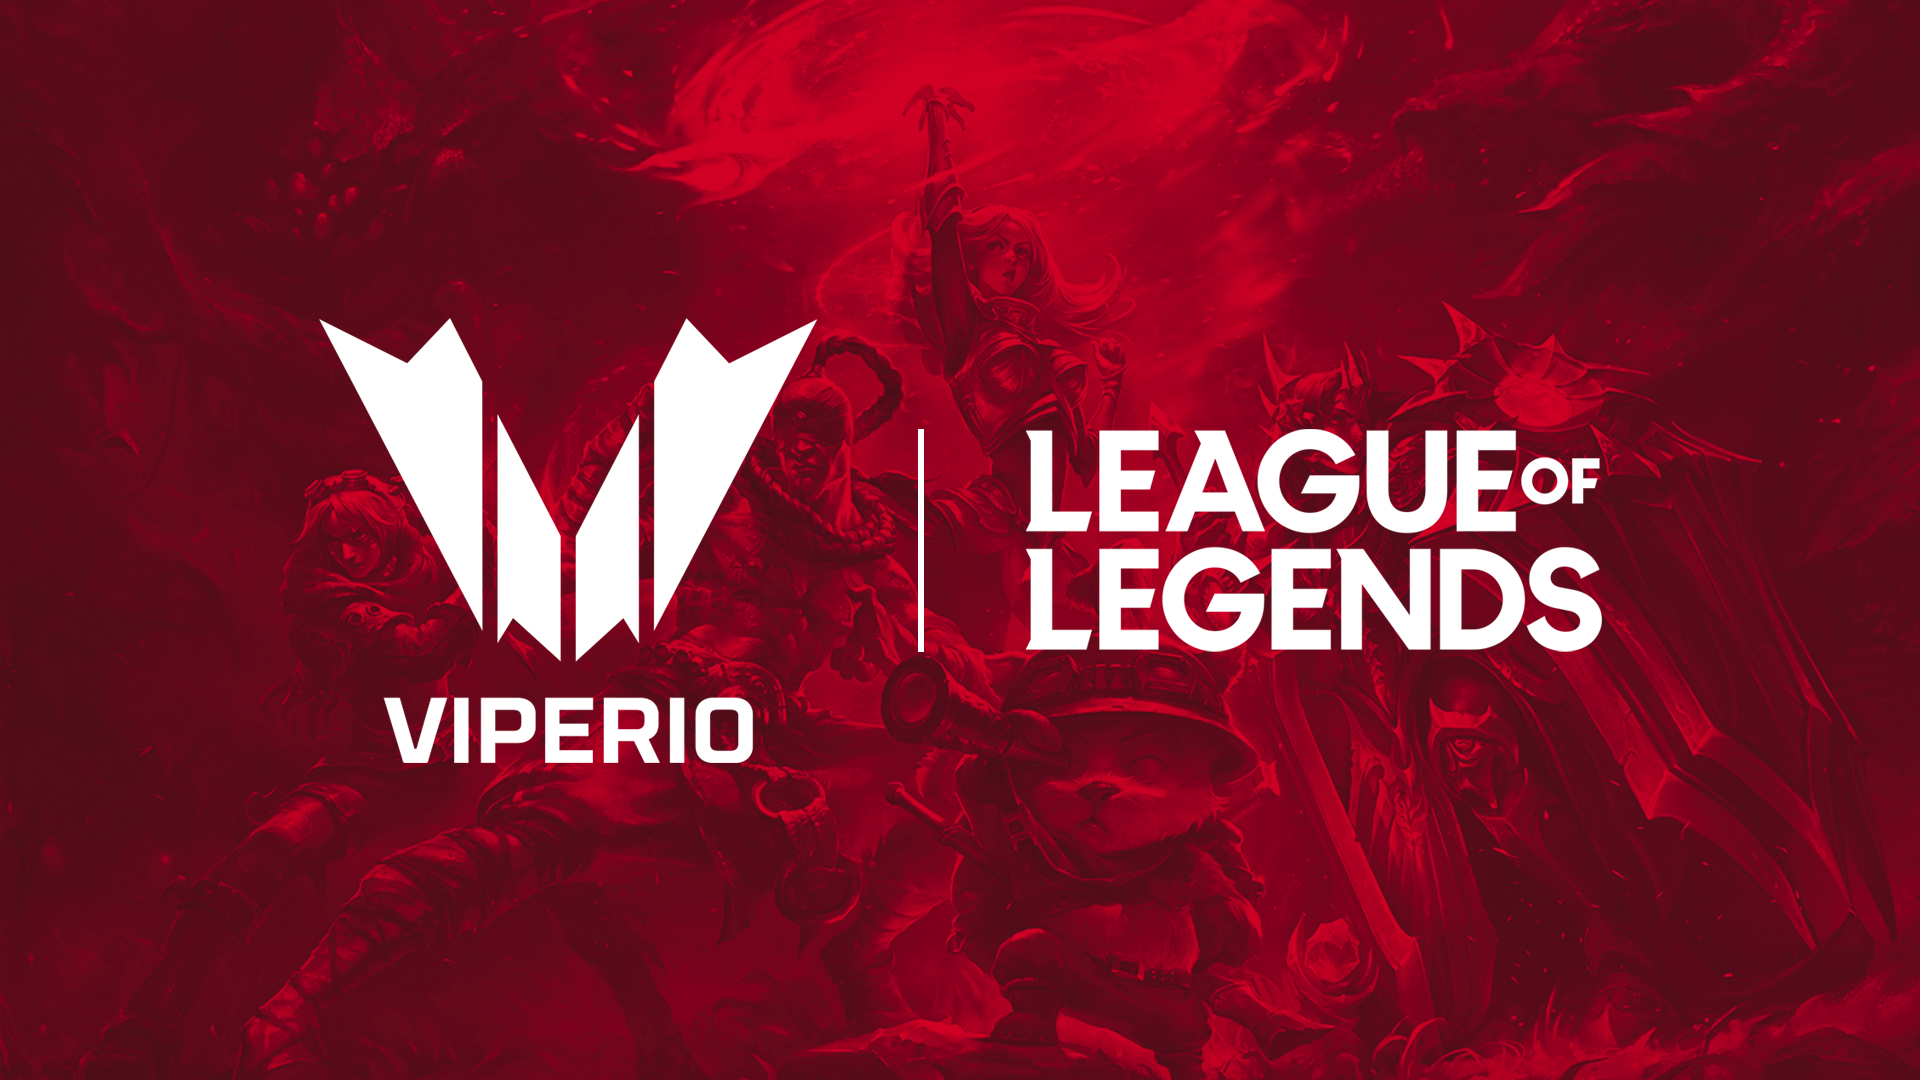 Viperio League of Legends Division Update